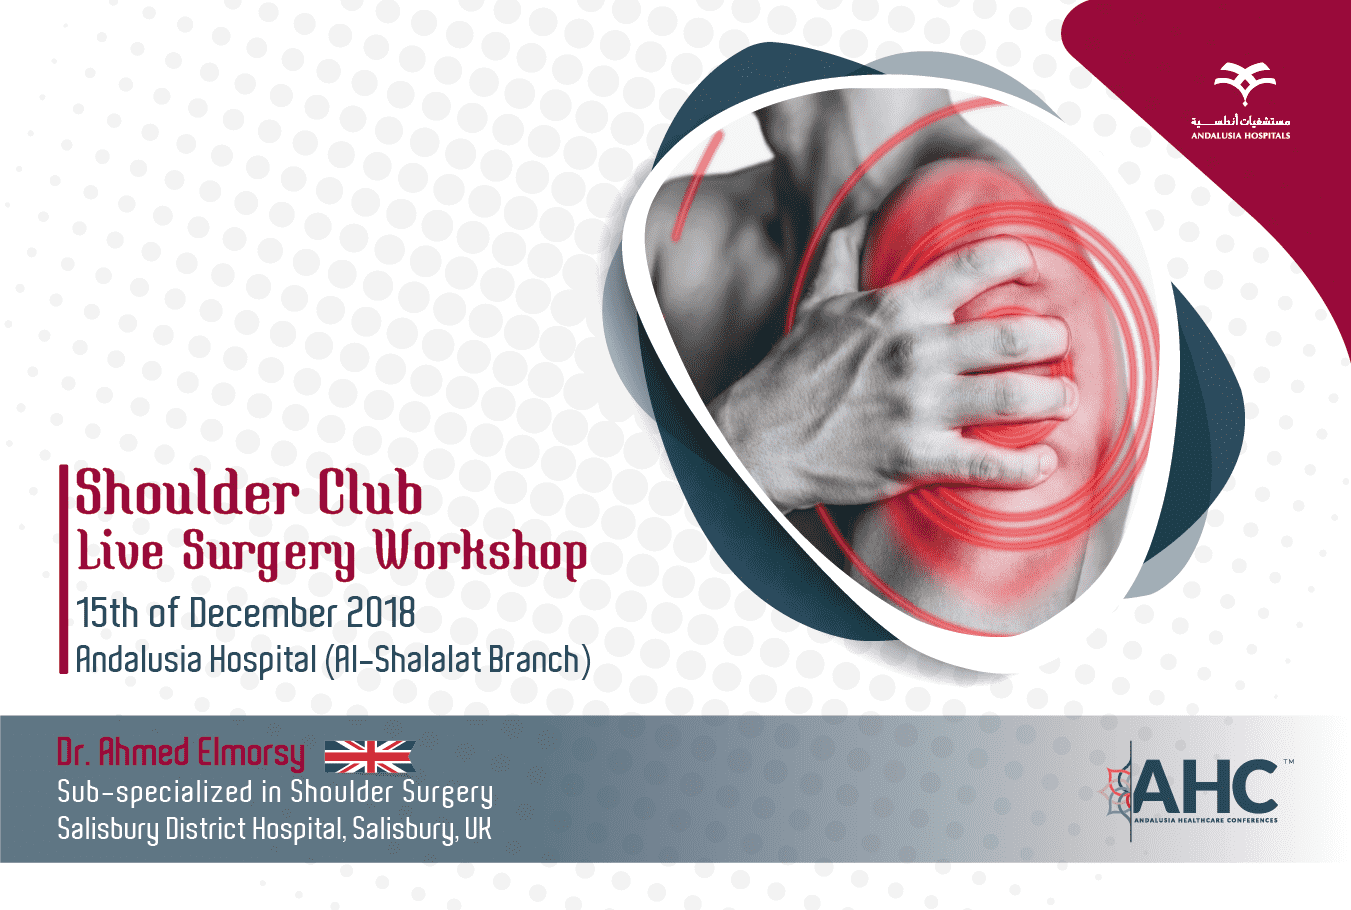 Shoulder club, live surgery workshop